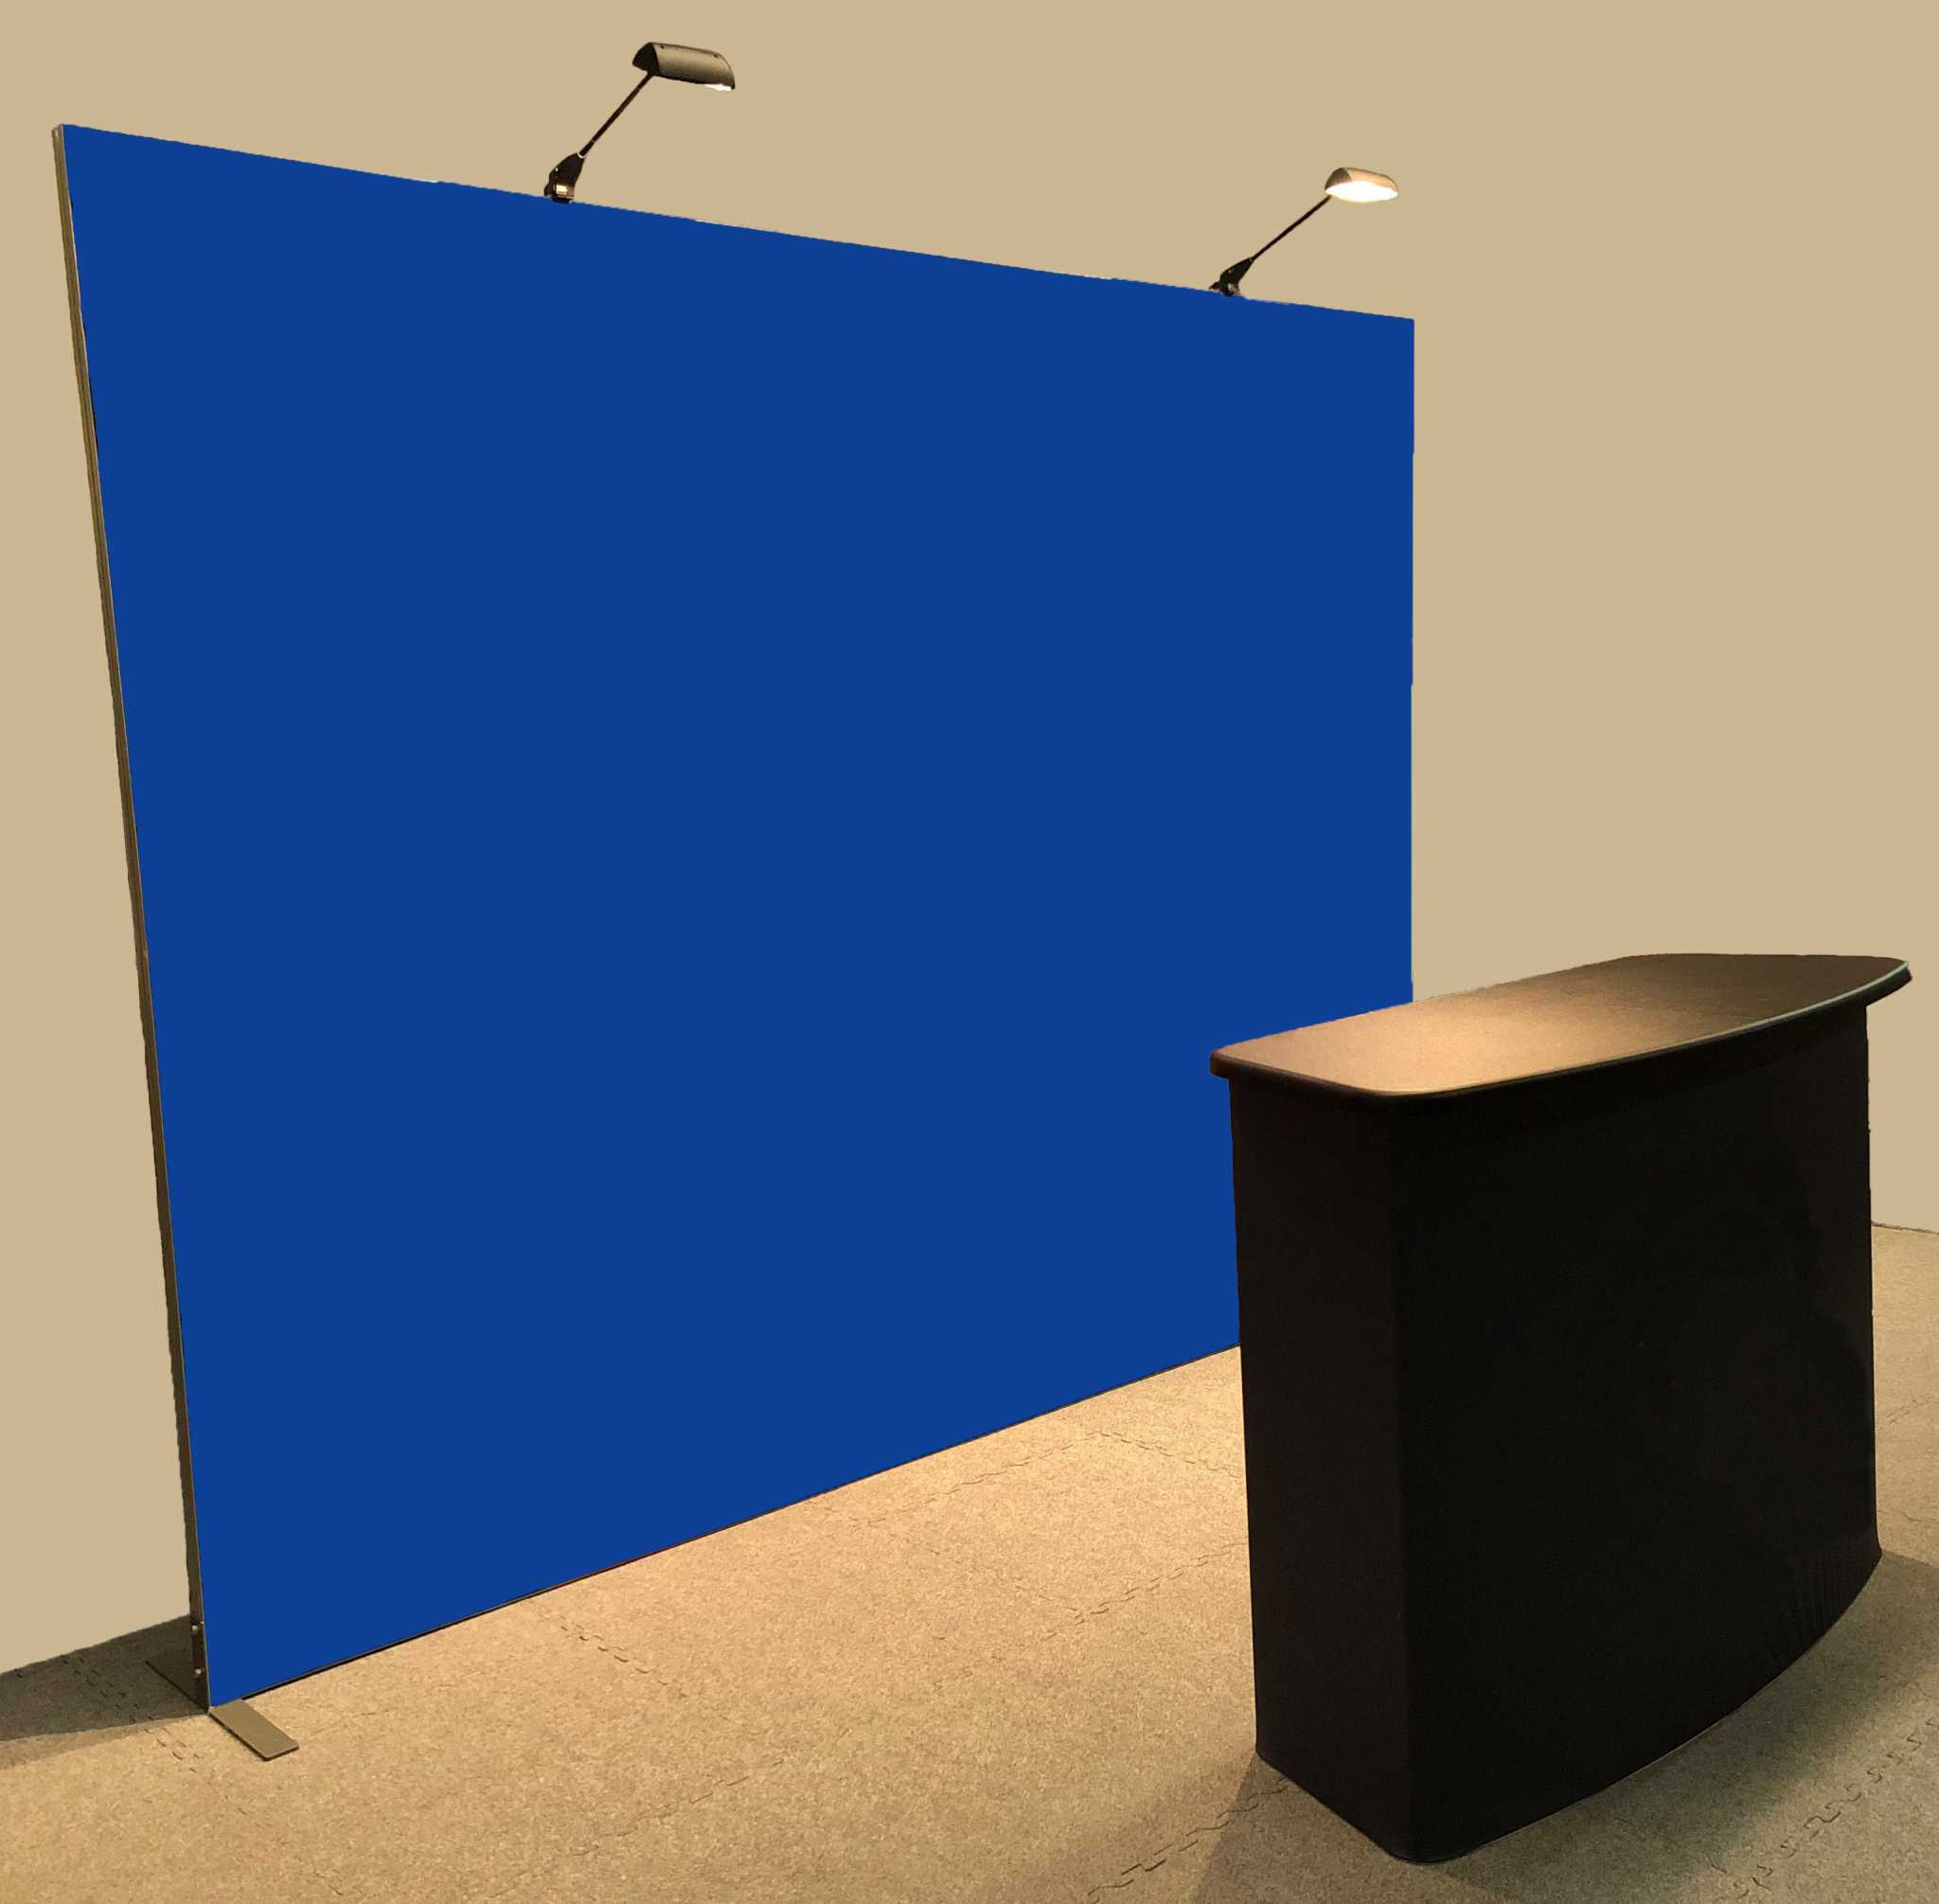 10-ft Vector Frame push-fit fabric display with custom graphic